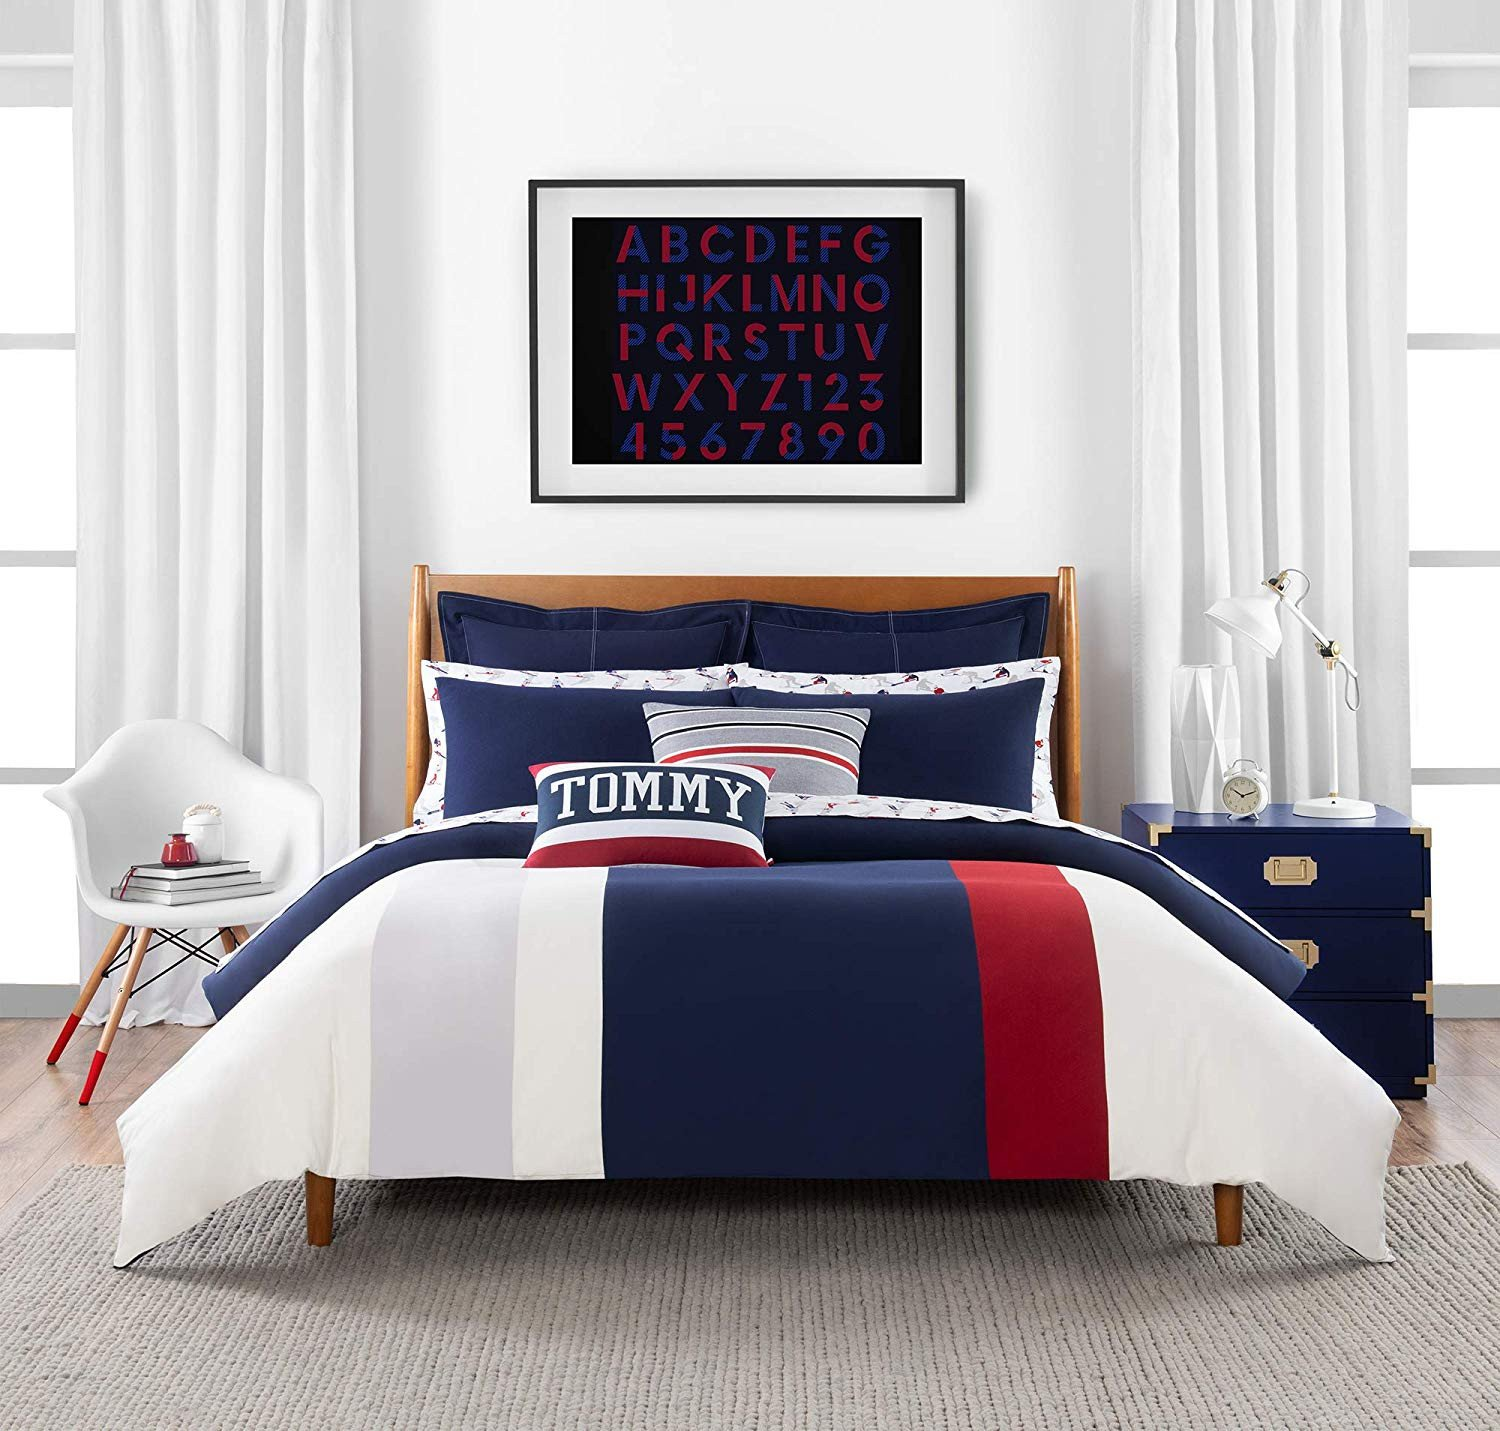 Rooms to Go White Bedroom Set Unique Amazon tommy Hilfiger Clash Of 85 Stripe Bedding